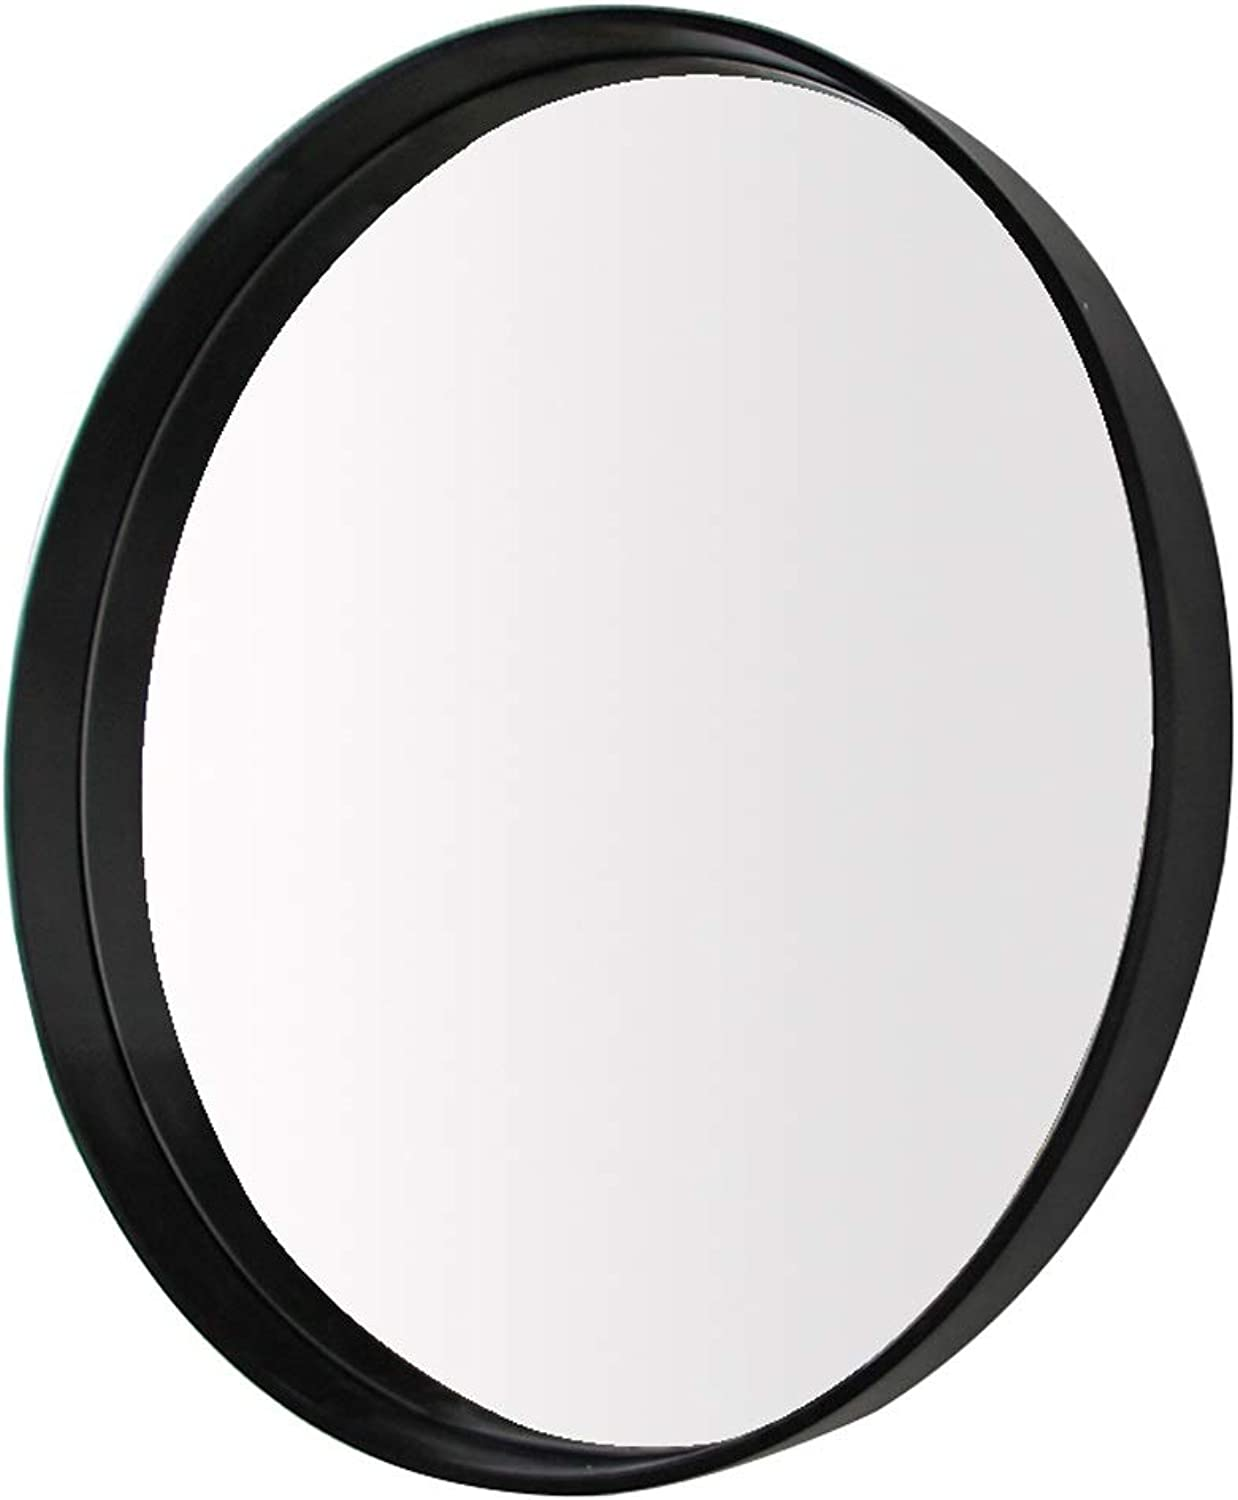 HELIn Modern Black Circle Frame Wall Mirror   Contemporary Premium Silver Backed Floating Round Glass Panel   Bedroom, or Bathroom   Hanging (Size   60CM)